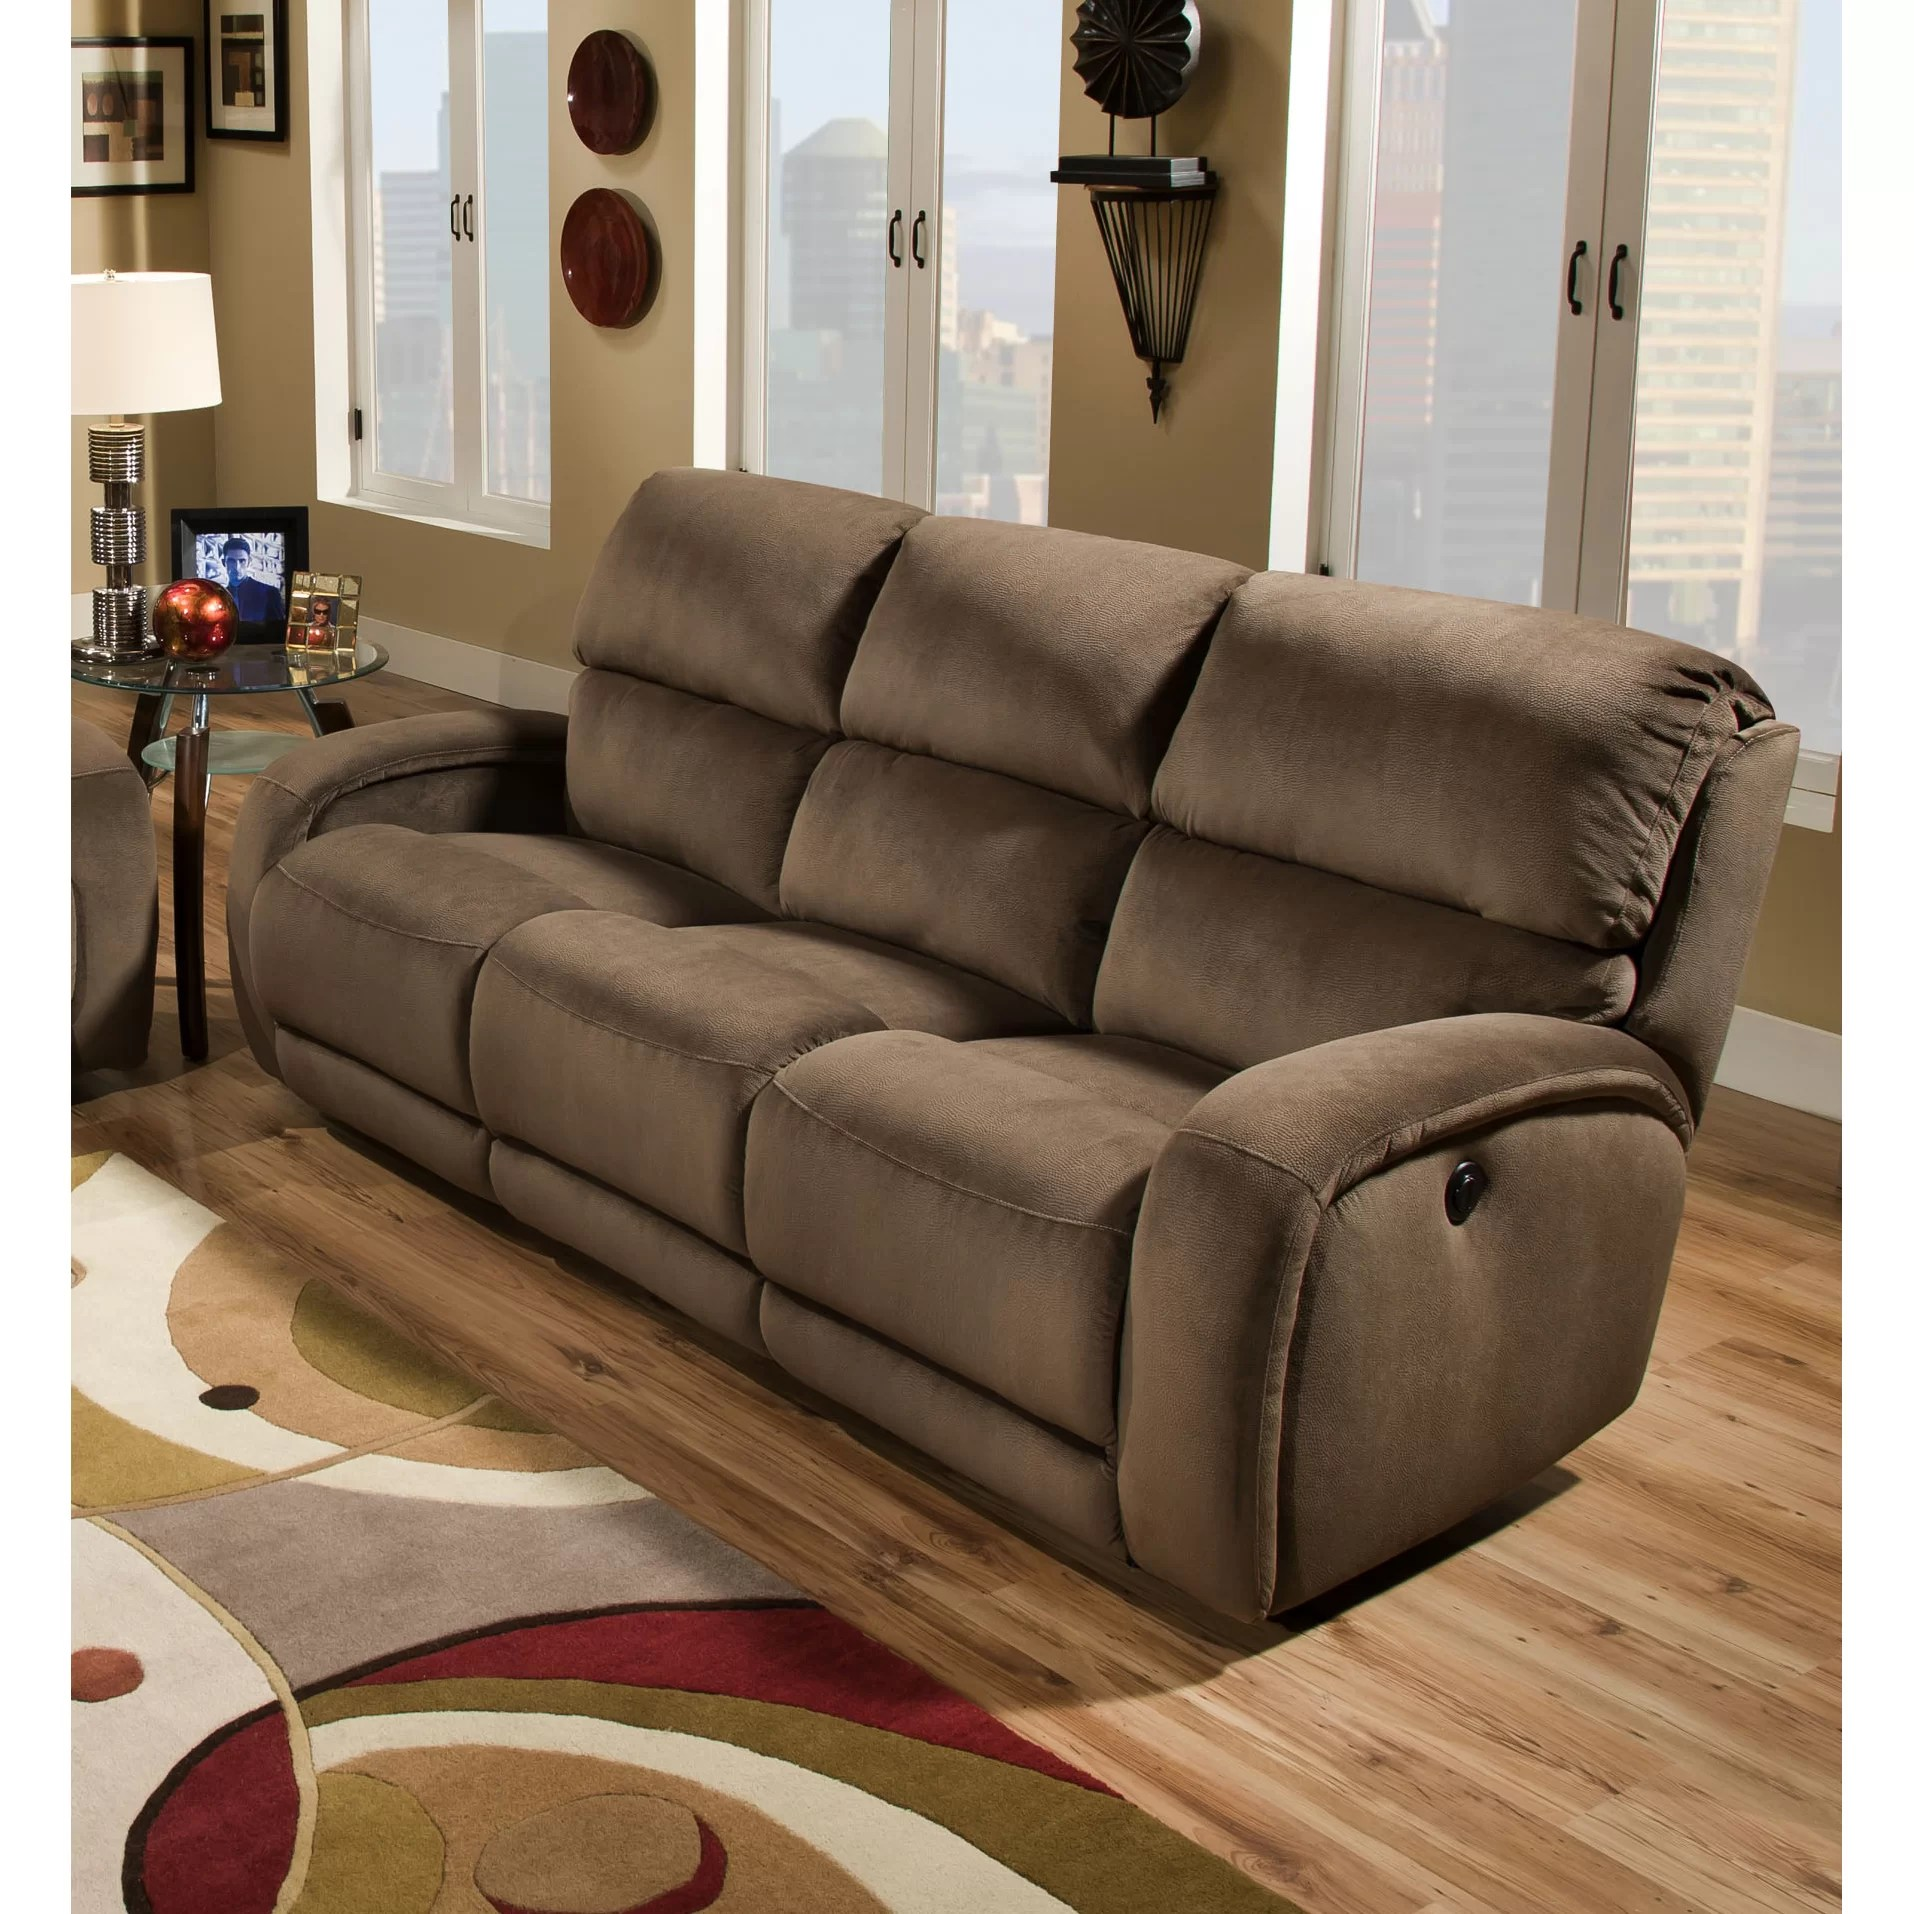 southern motion power reclining sofa reviews delivery sydney fandango 39 double and